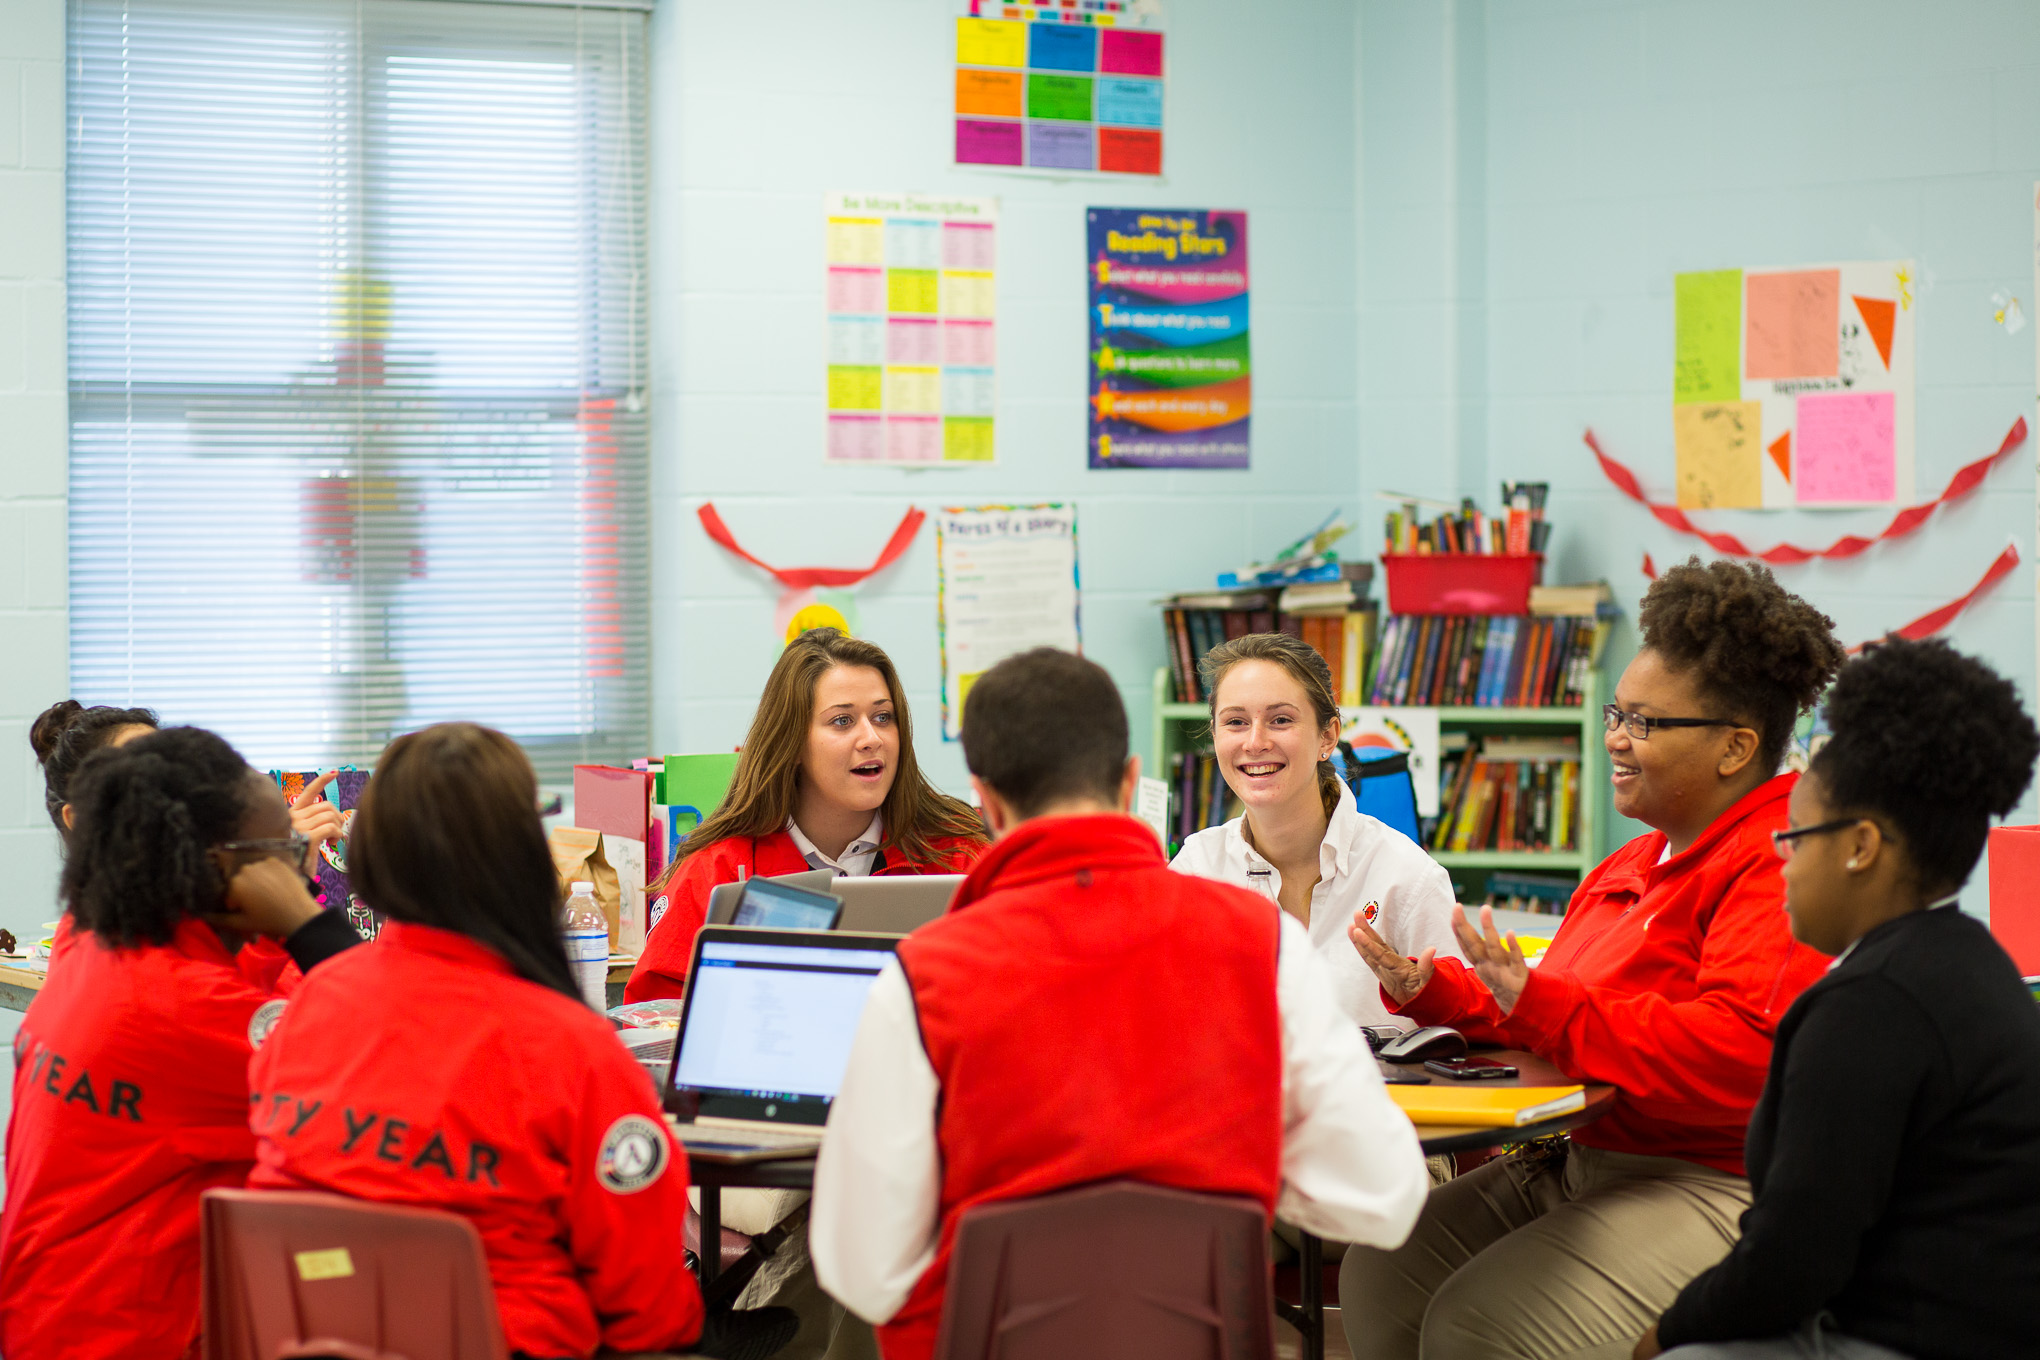 Davis Middle School City Year team members meet for a morning meeting before school starts.